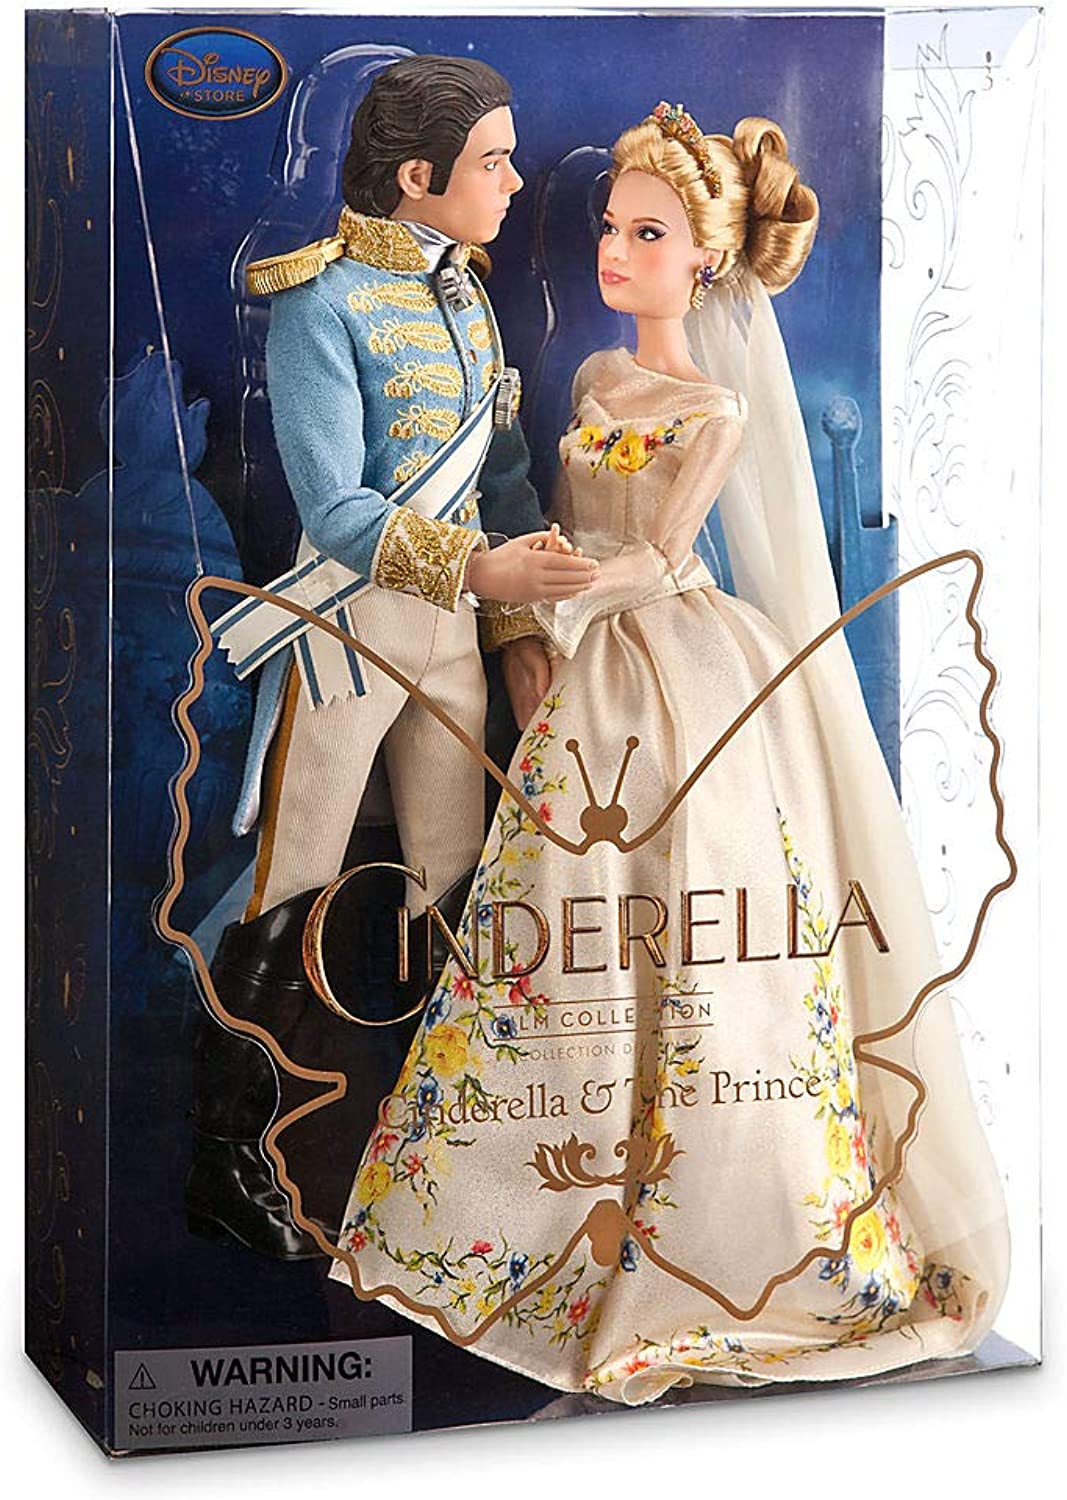 Disney Film Collection - Cinderella und Prinz Charming Puppenset